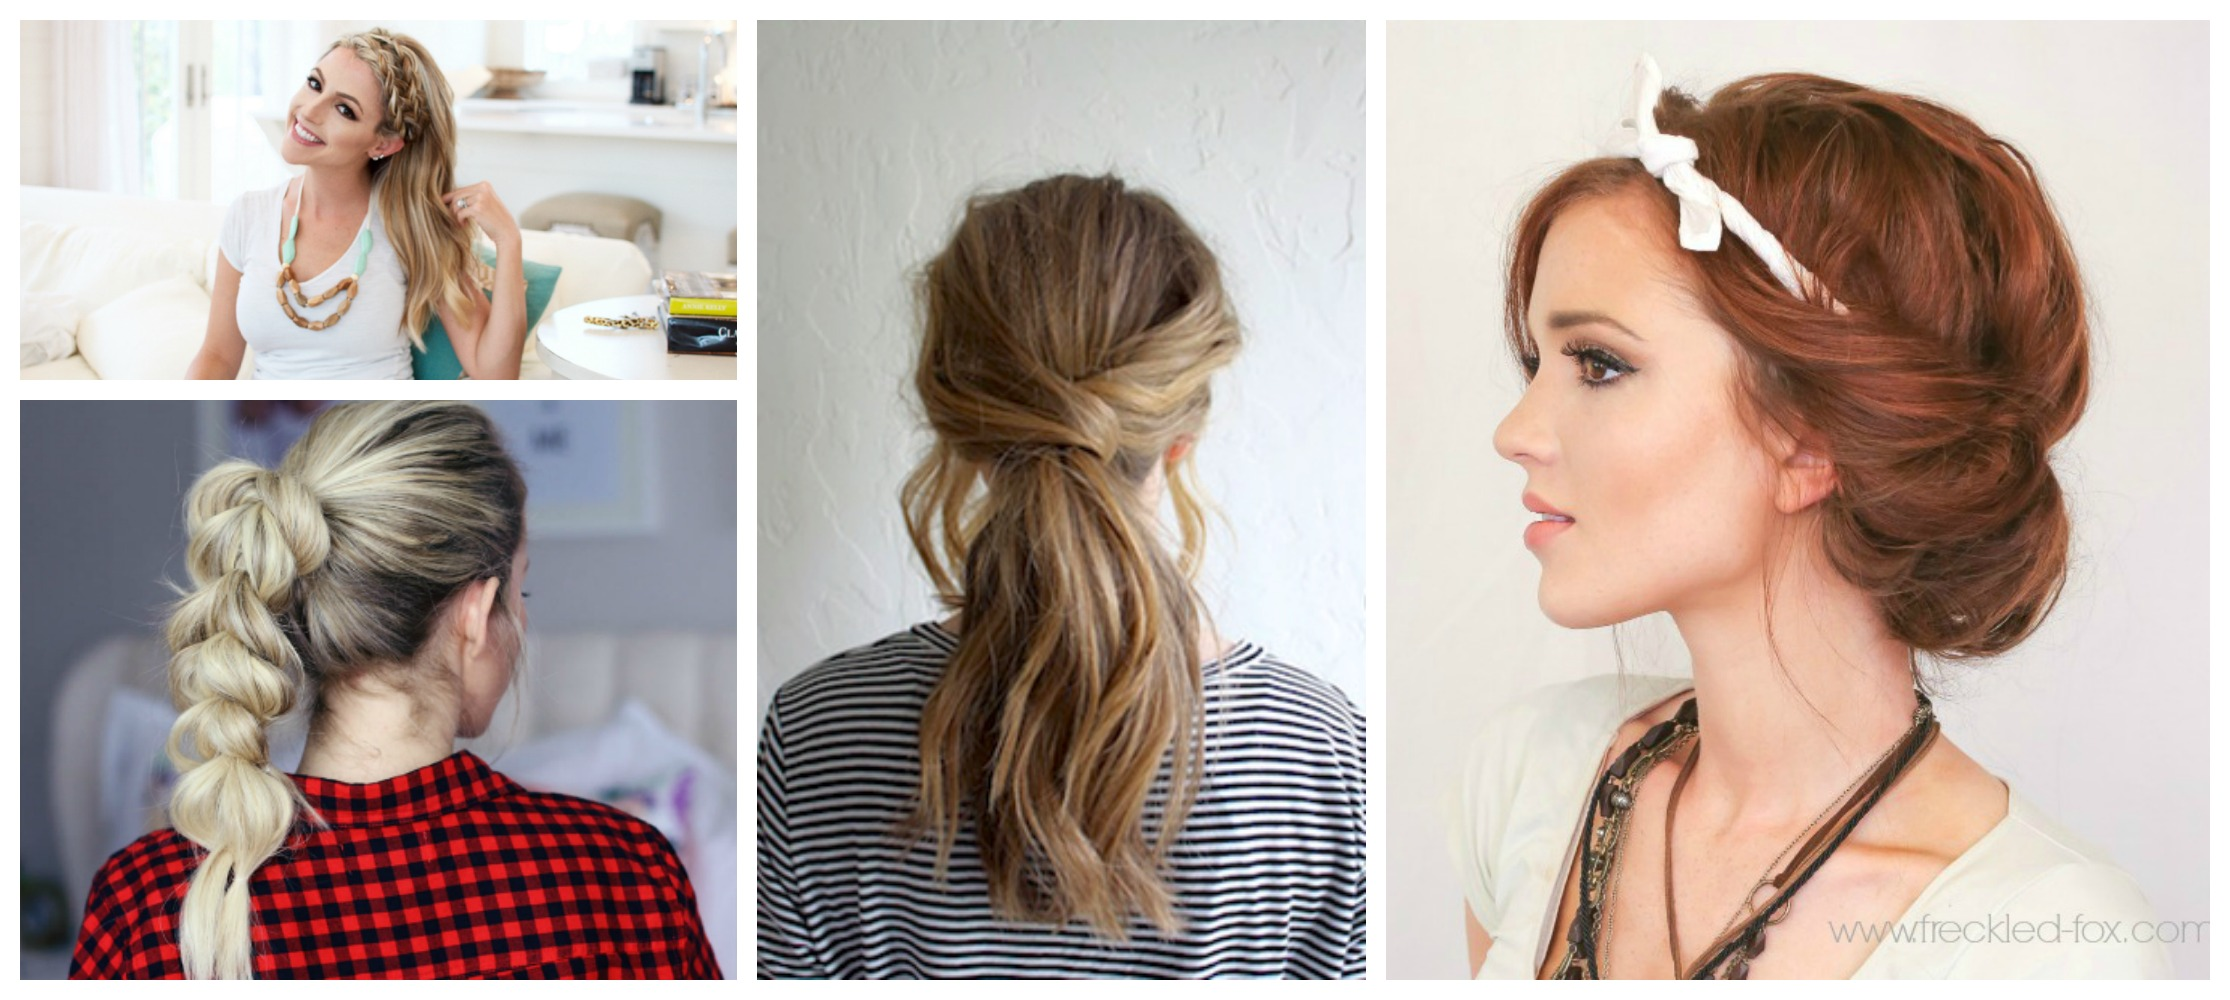 8 quick easy hairstyles that make dirty hair look fab diy thought 8 quick easy hairstyles that make dirty hair look fab urmus Gallery